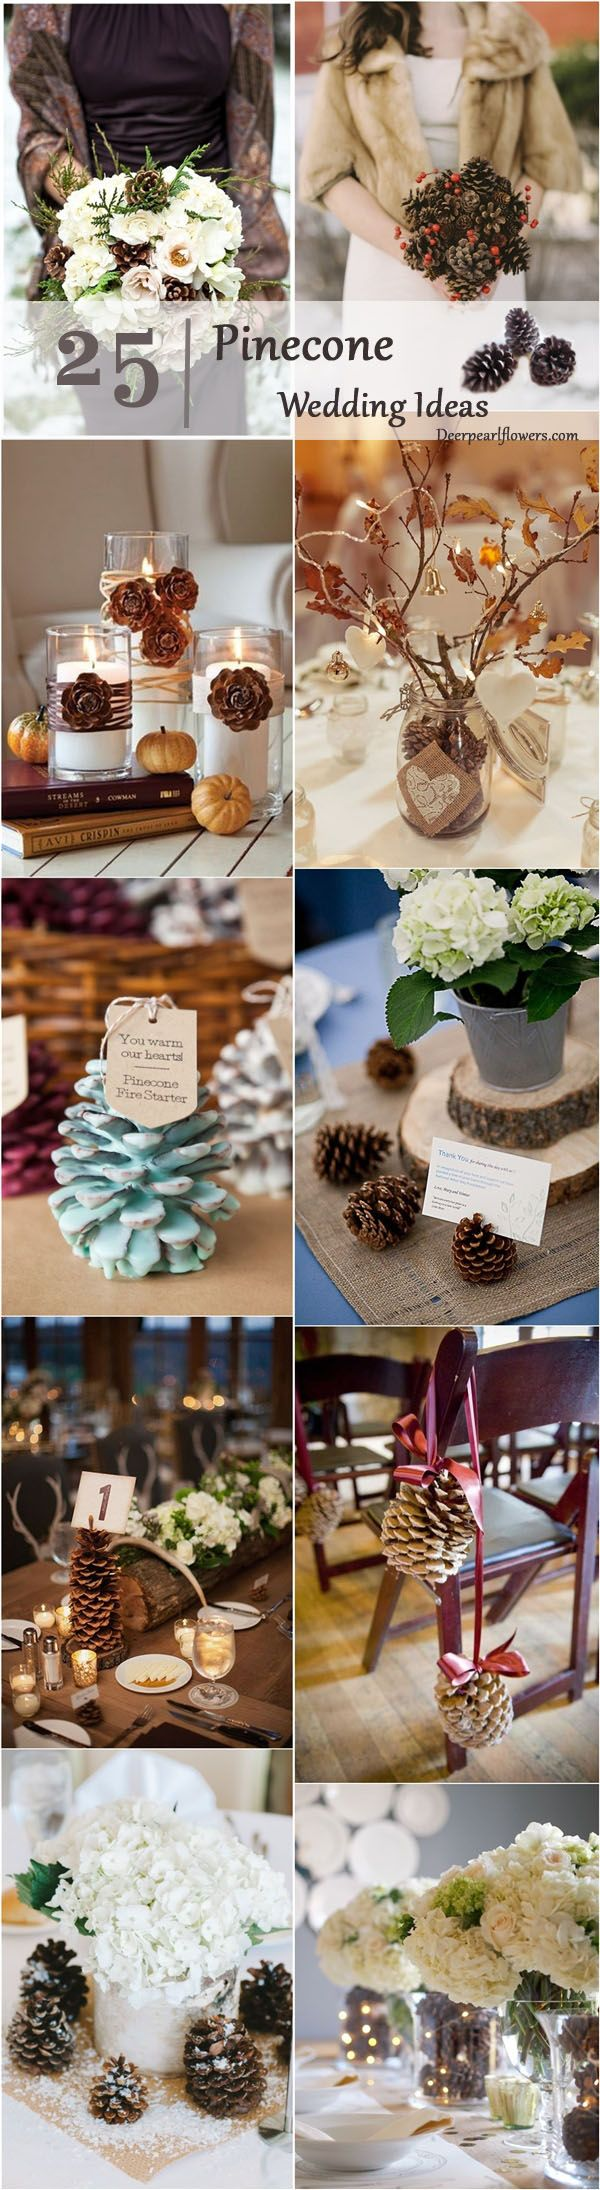 winter fall rustic pinecone wedding ideas / http://www.deerpearlflowers.com/rustic-winter-pinecone-wedding-ideas/